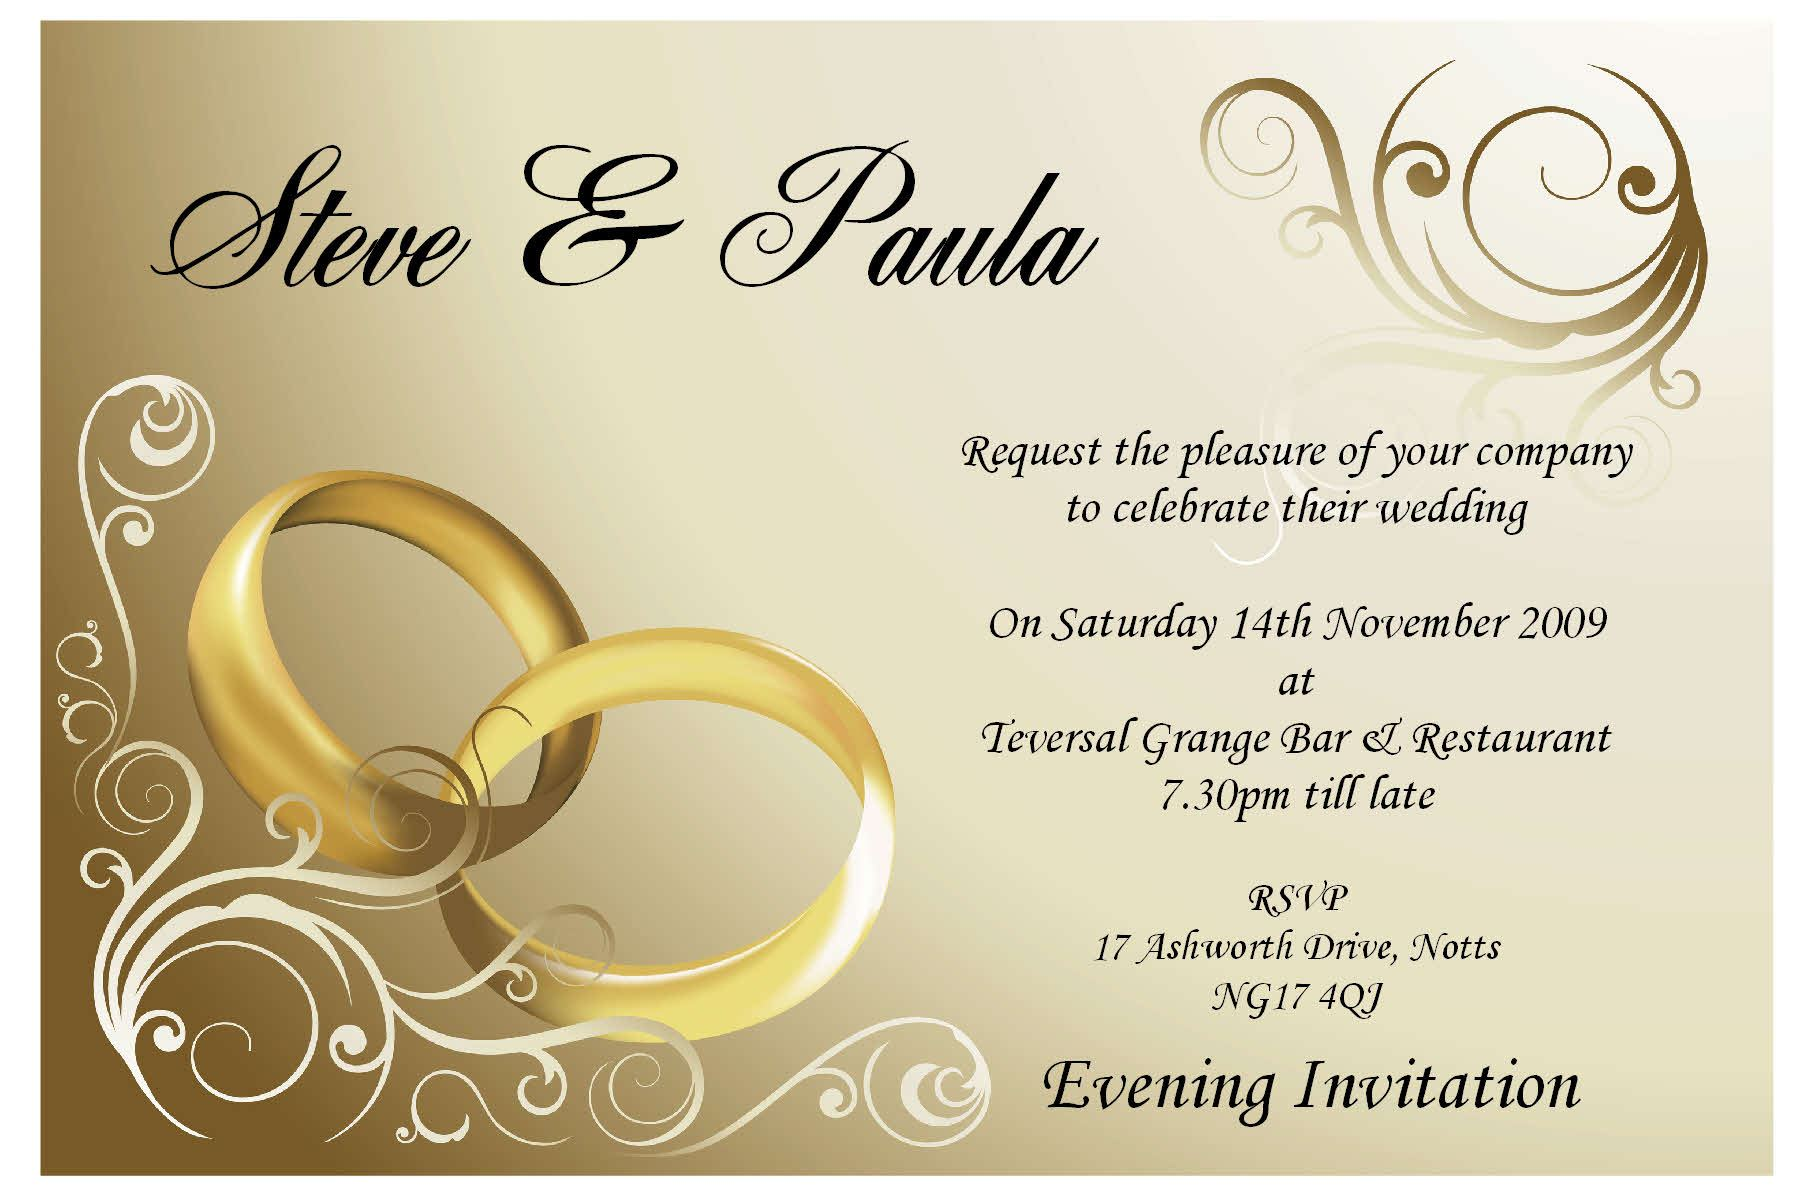 Sample Wedding Invitation Card : Samples Wedding Invitation Cards ...